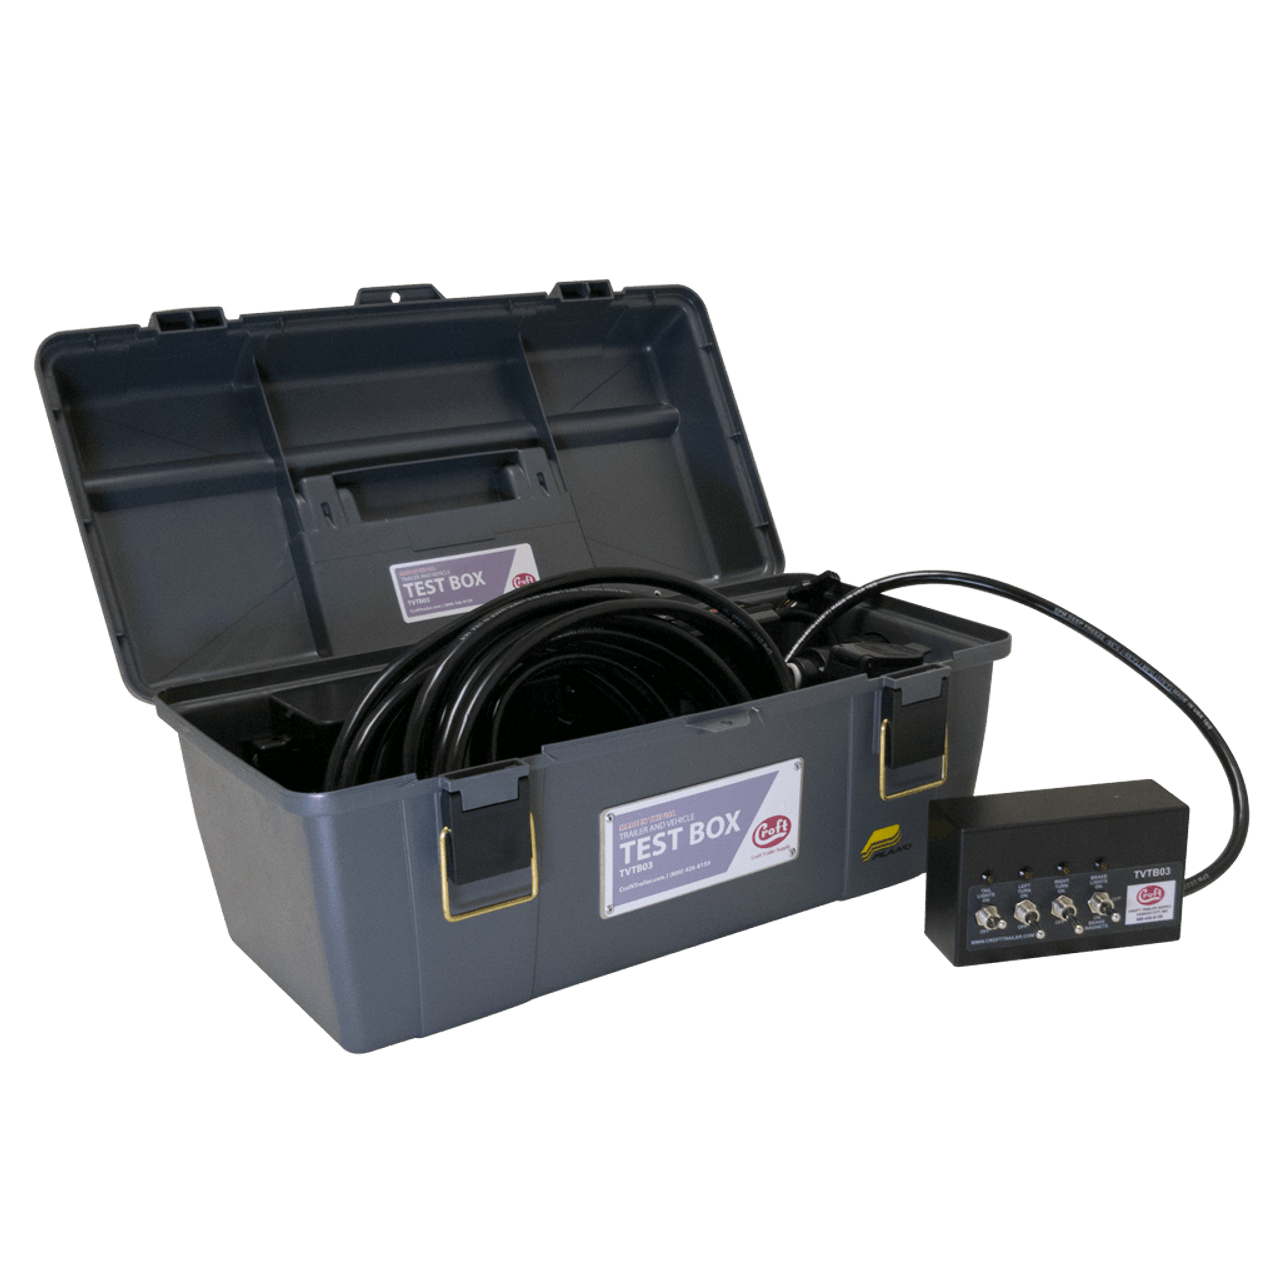 TVTB03 --- Trailer and Vehicle Test Box -  Lights, Electric Brakes, and Vehicle Connector